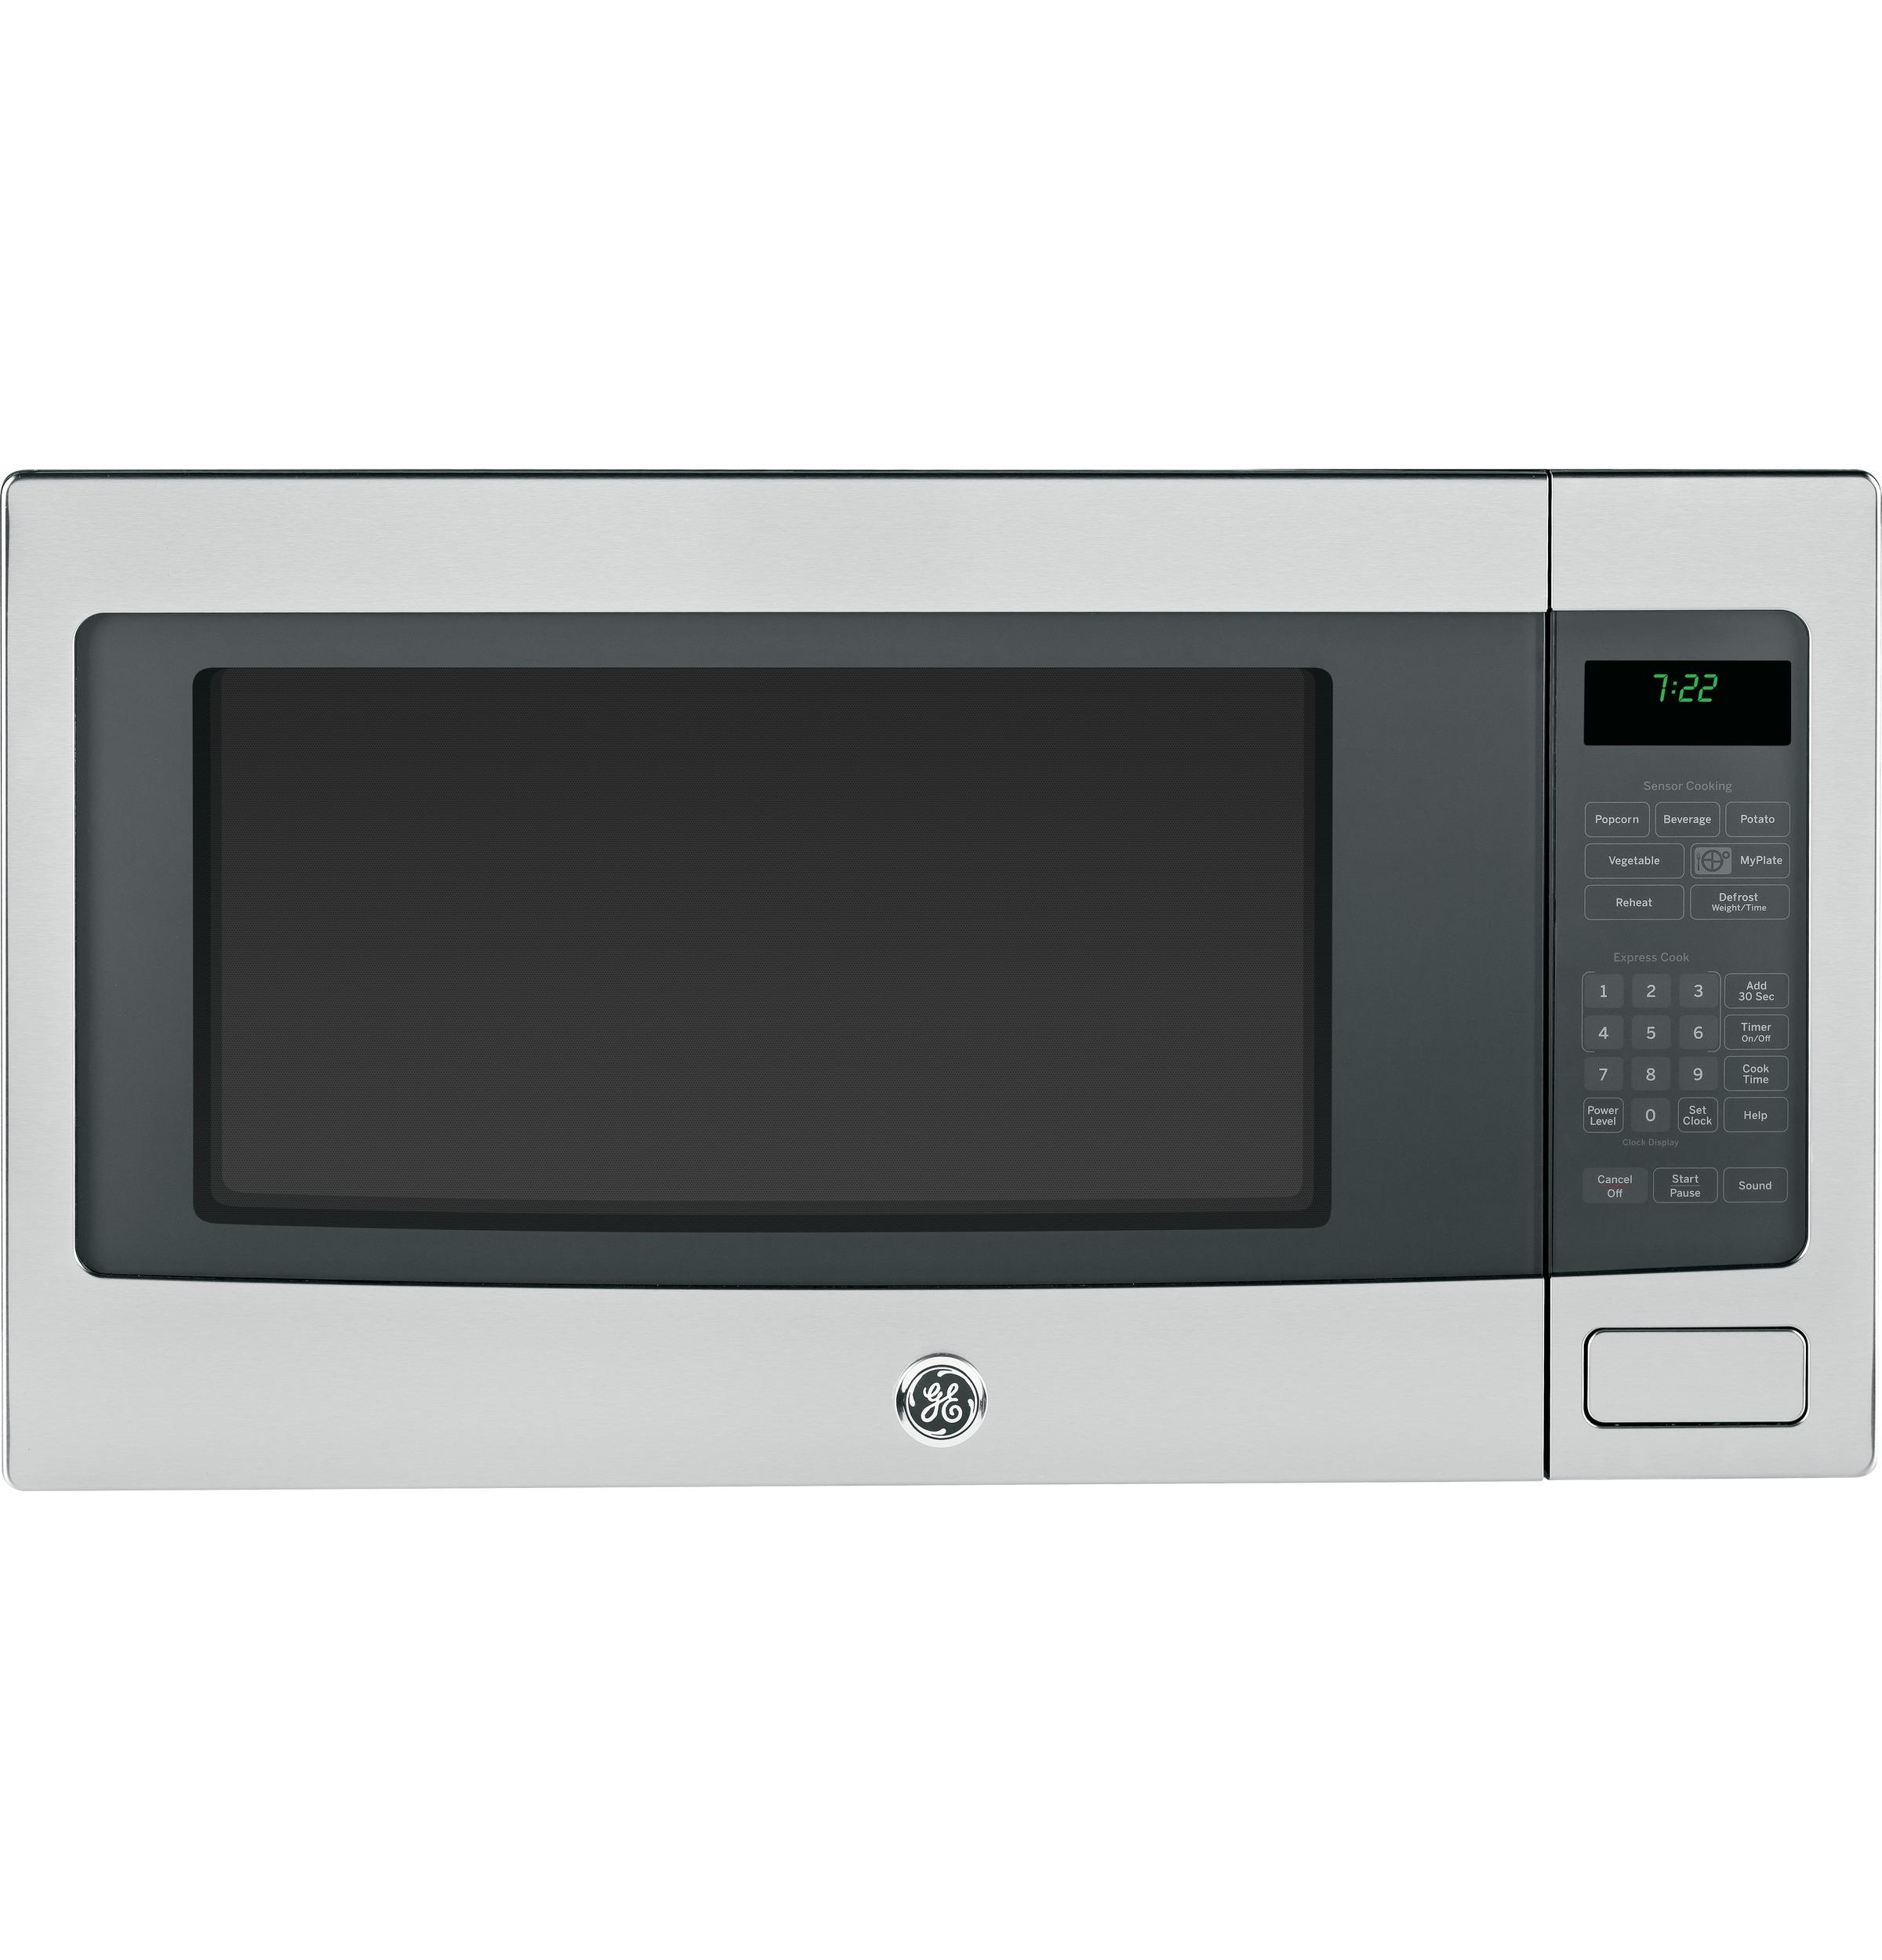 GE APPLIANCES PEB7226SFSS